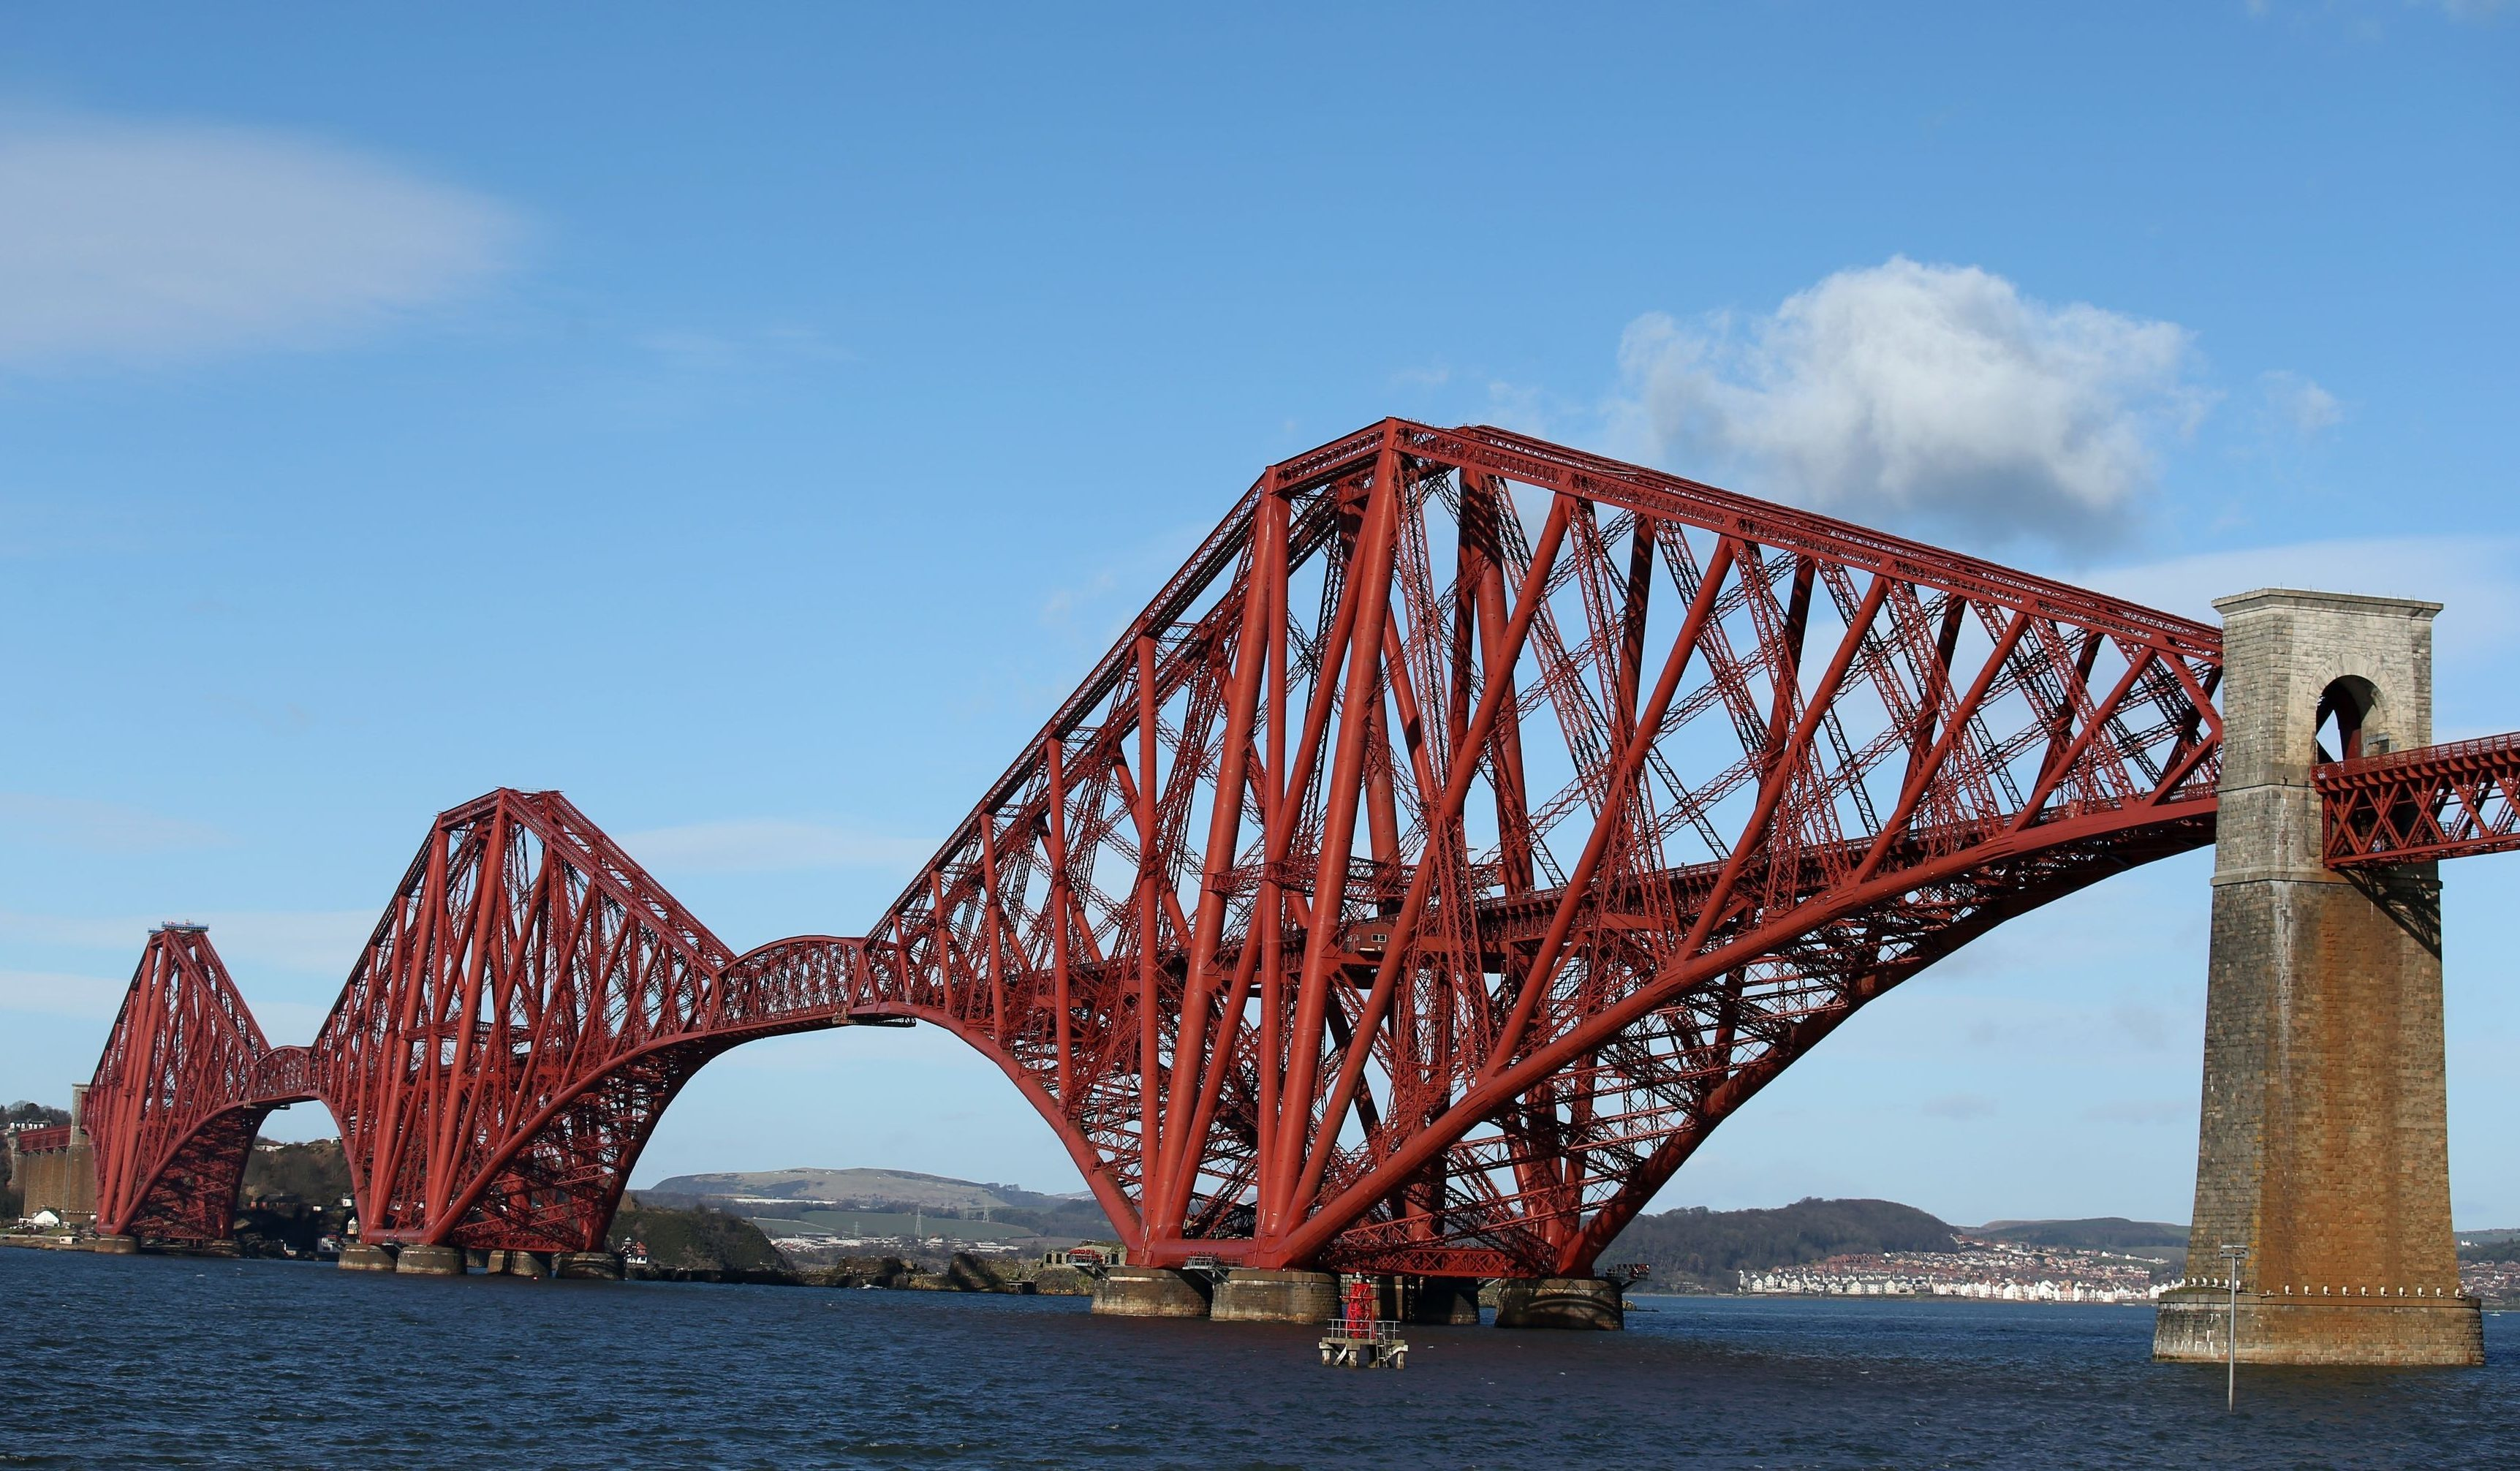 A person was on the line on the Forth Bridge